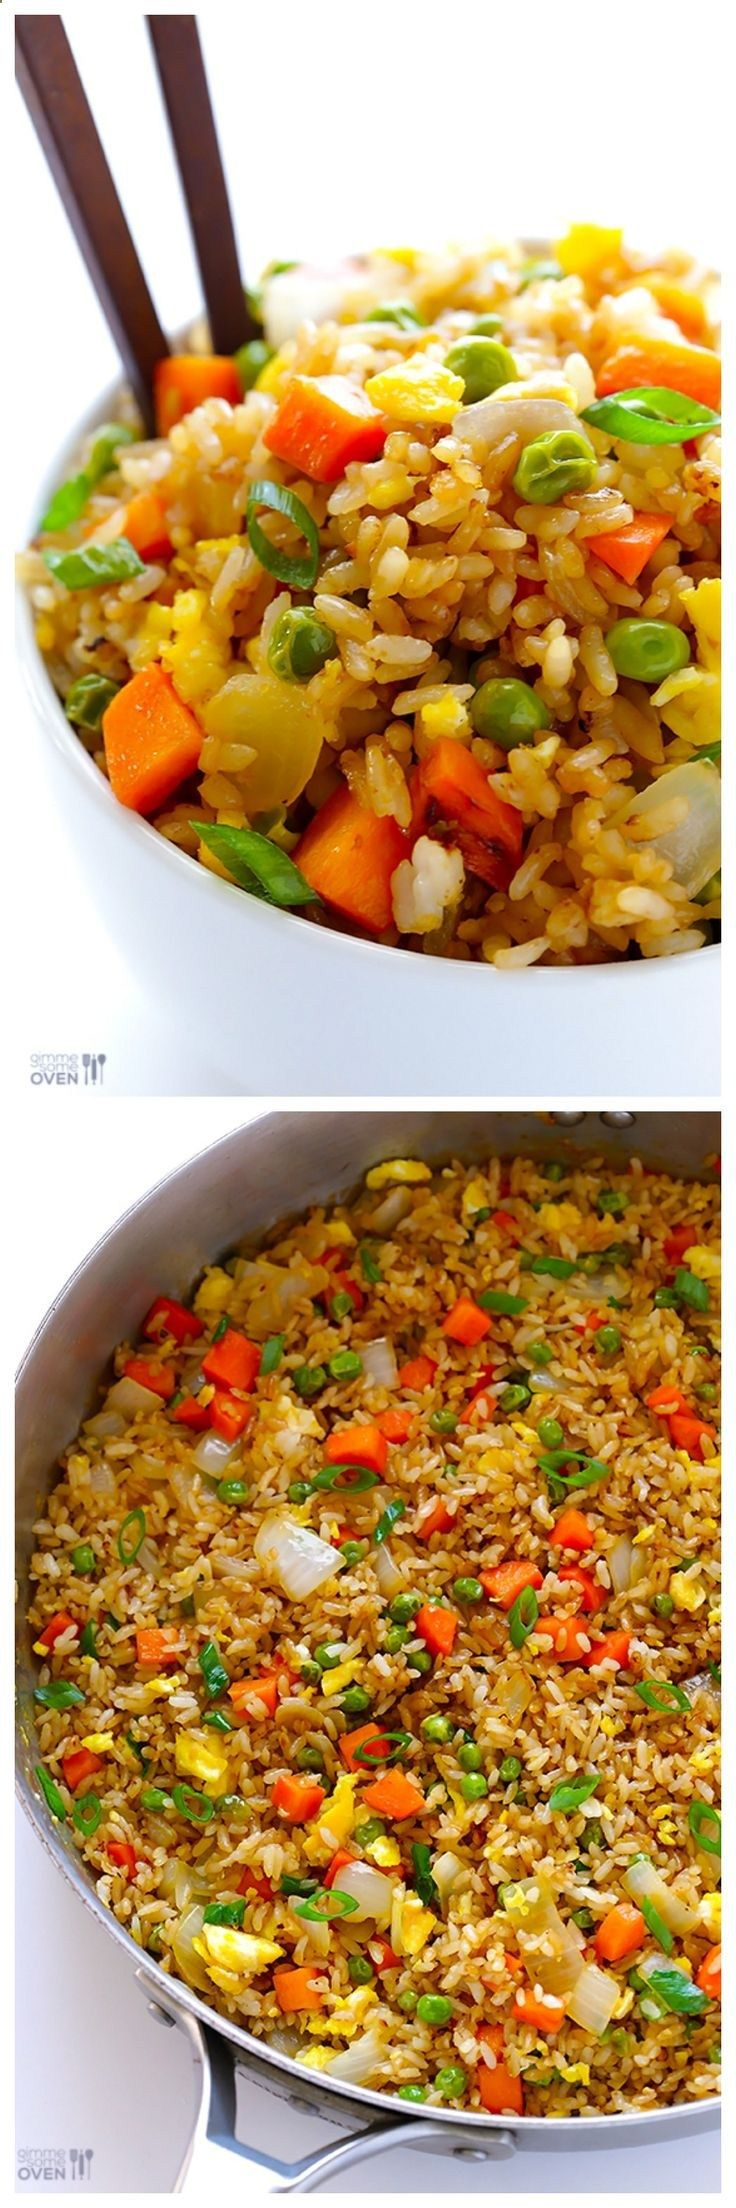 The BEST Fried Rice -- better than the restaurant version, and quick and easy to make homemade too! | http://gimmesomeoven.com Check out more recipes like this! Visit http://yumpinrecipes.com/